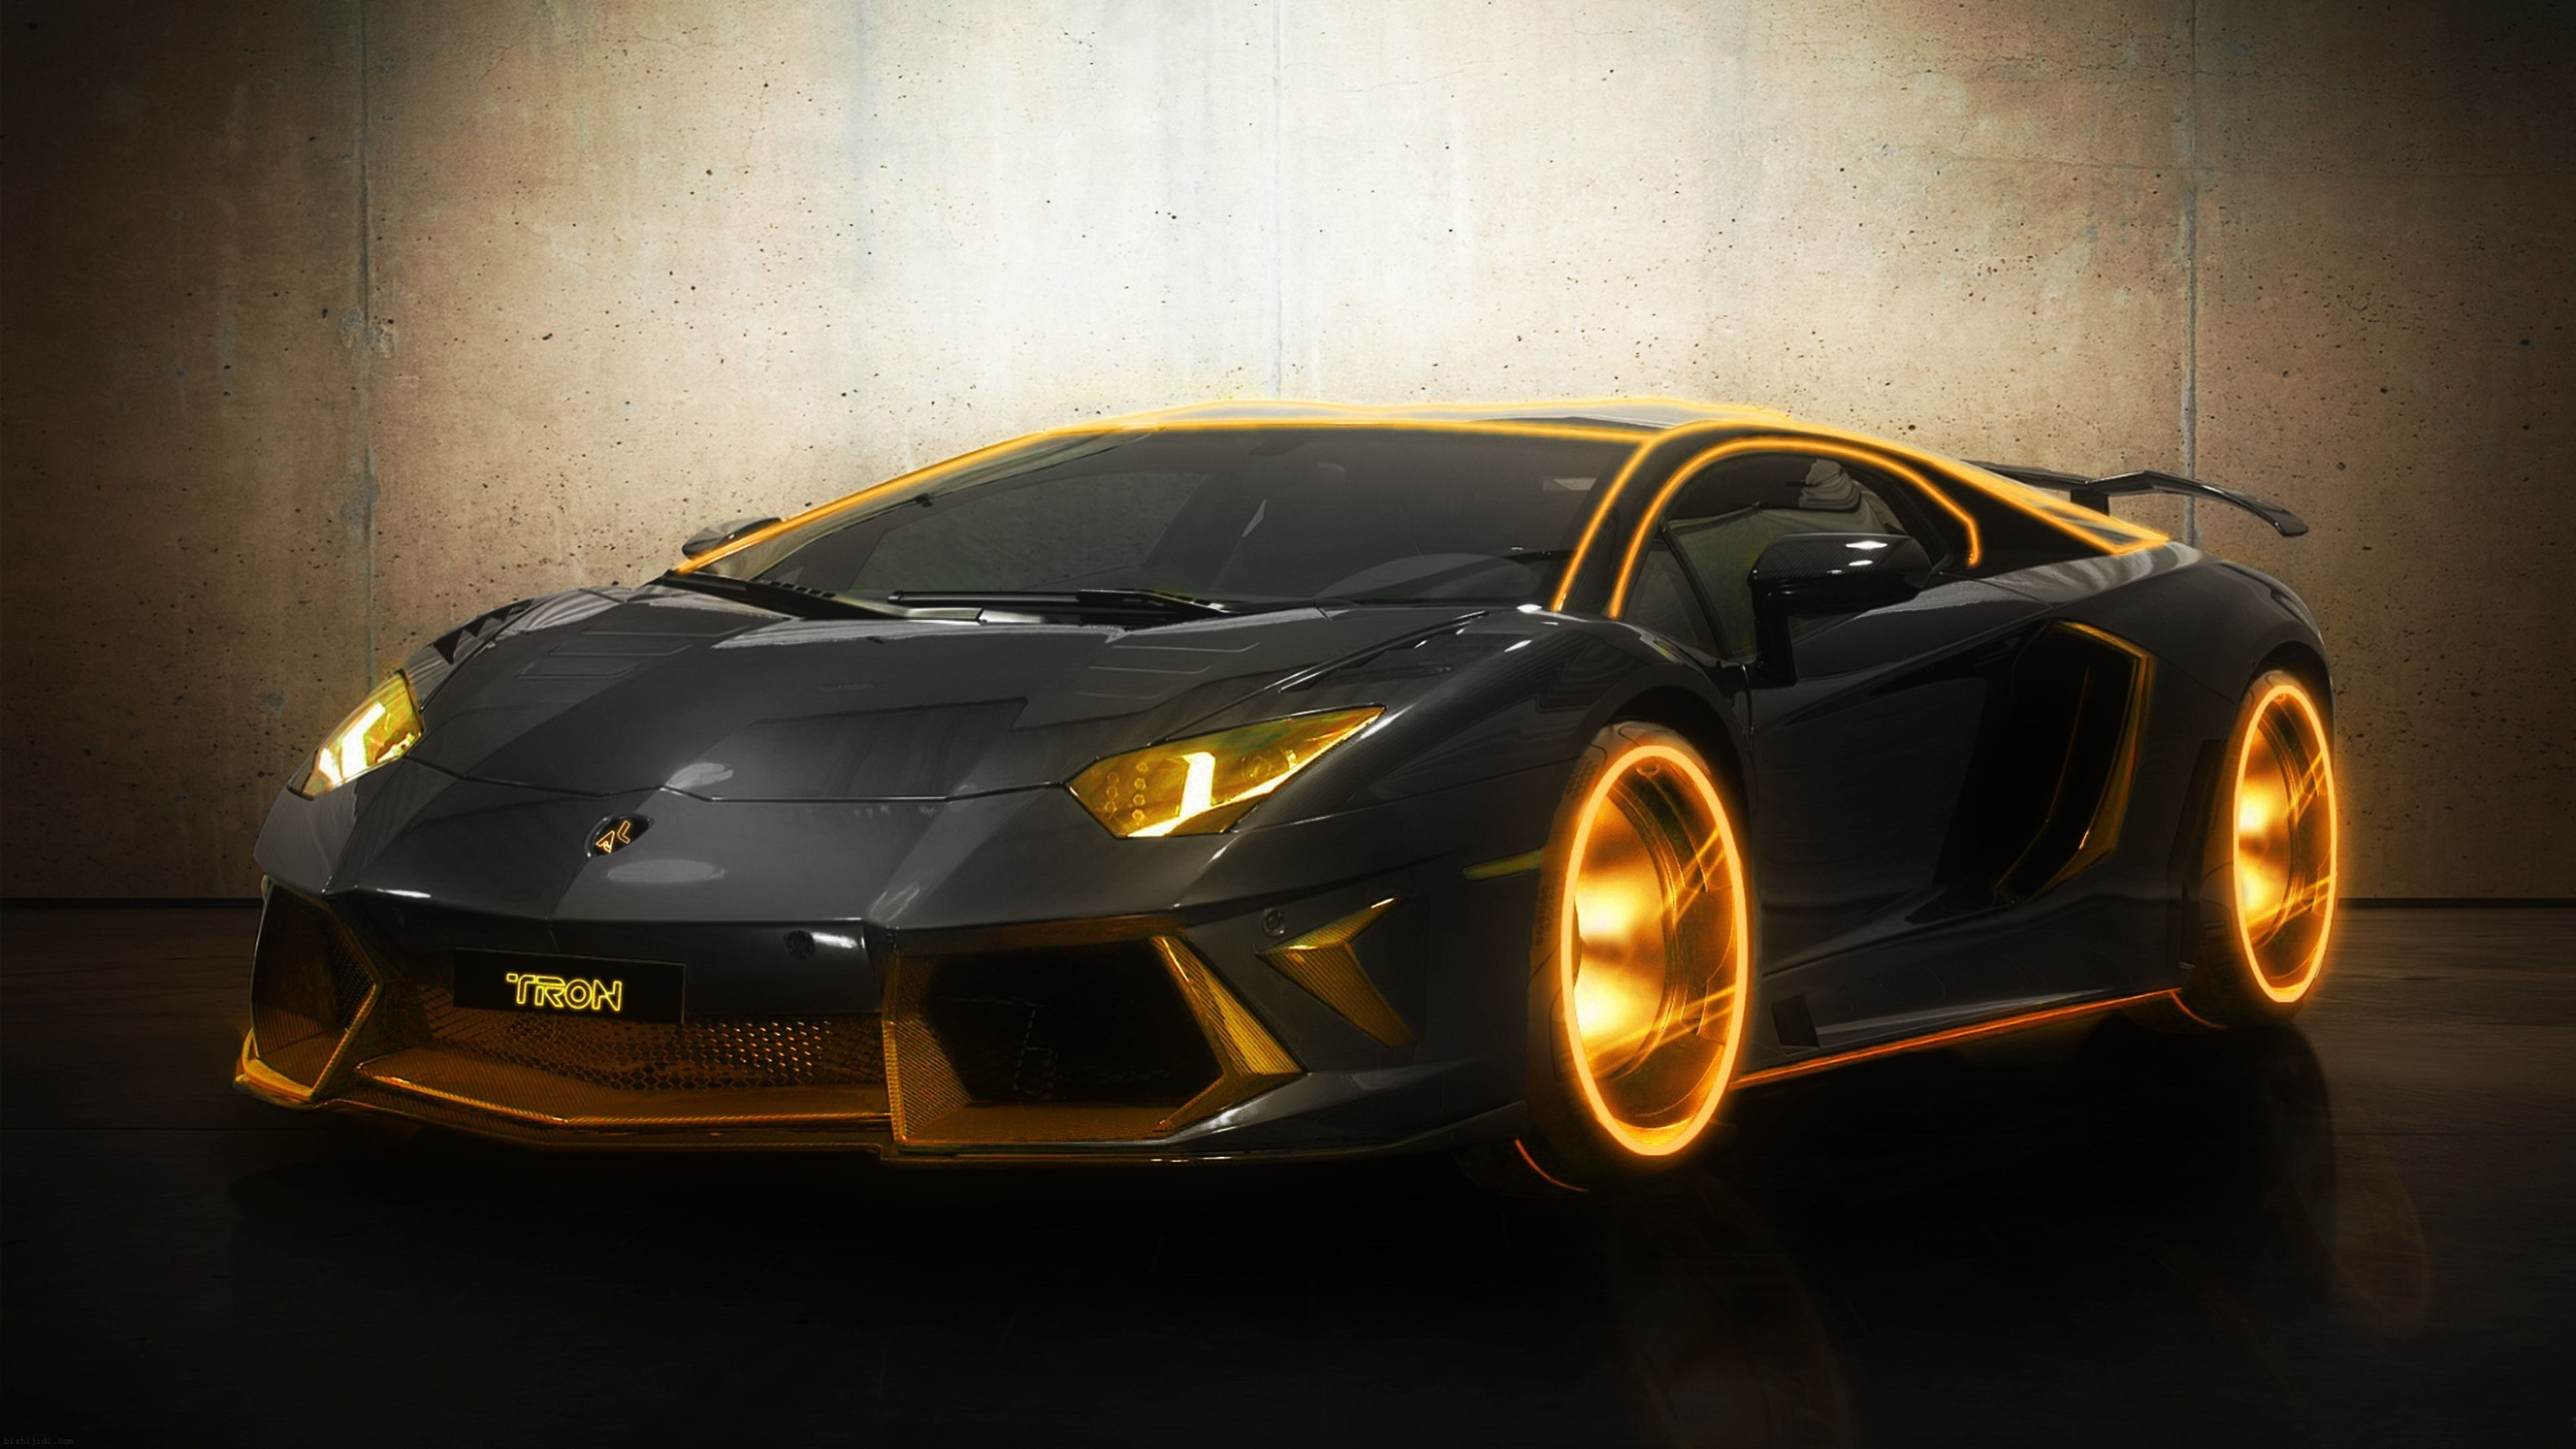 cool gold cars wallpapers (57+ images)